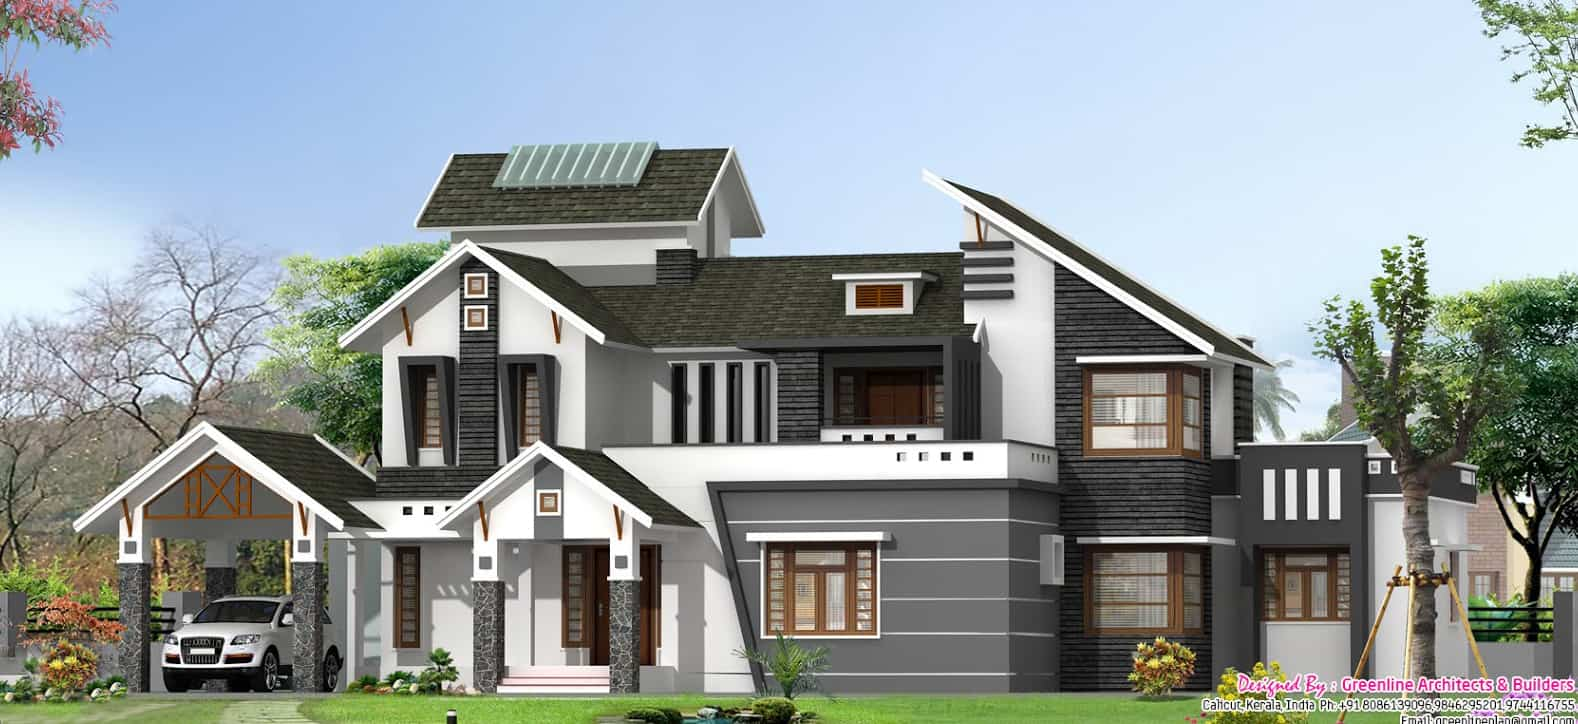 Unique house designs keralahouseplanner for Unique modern house designs